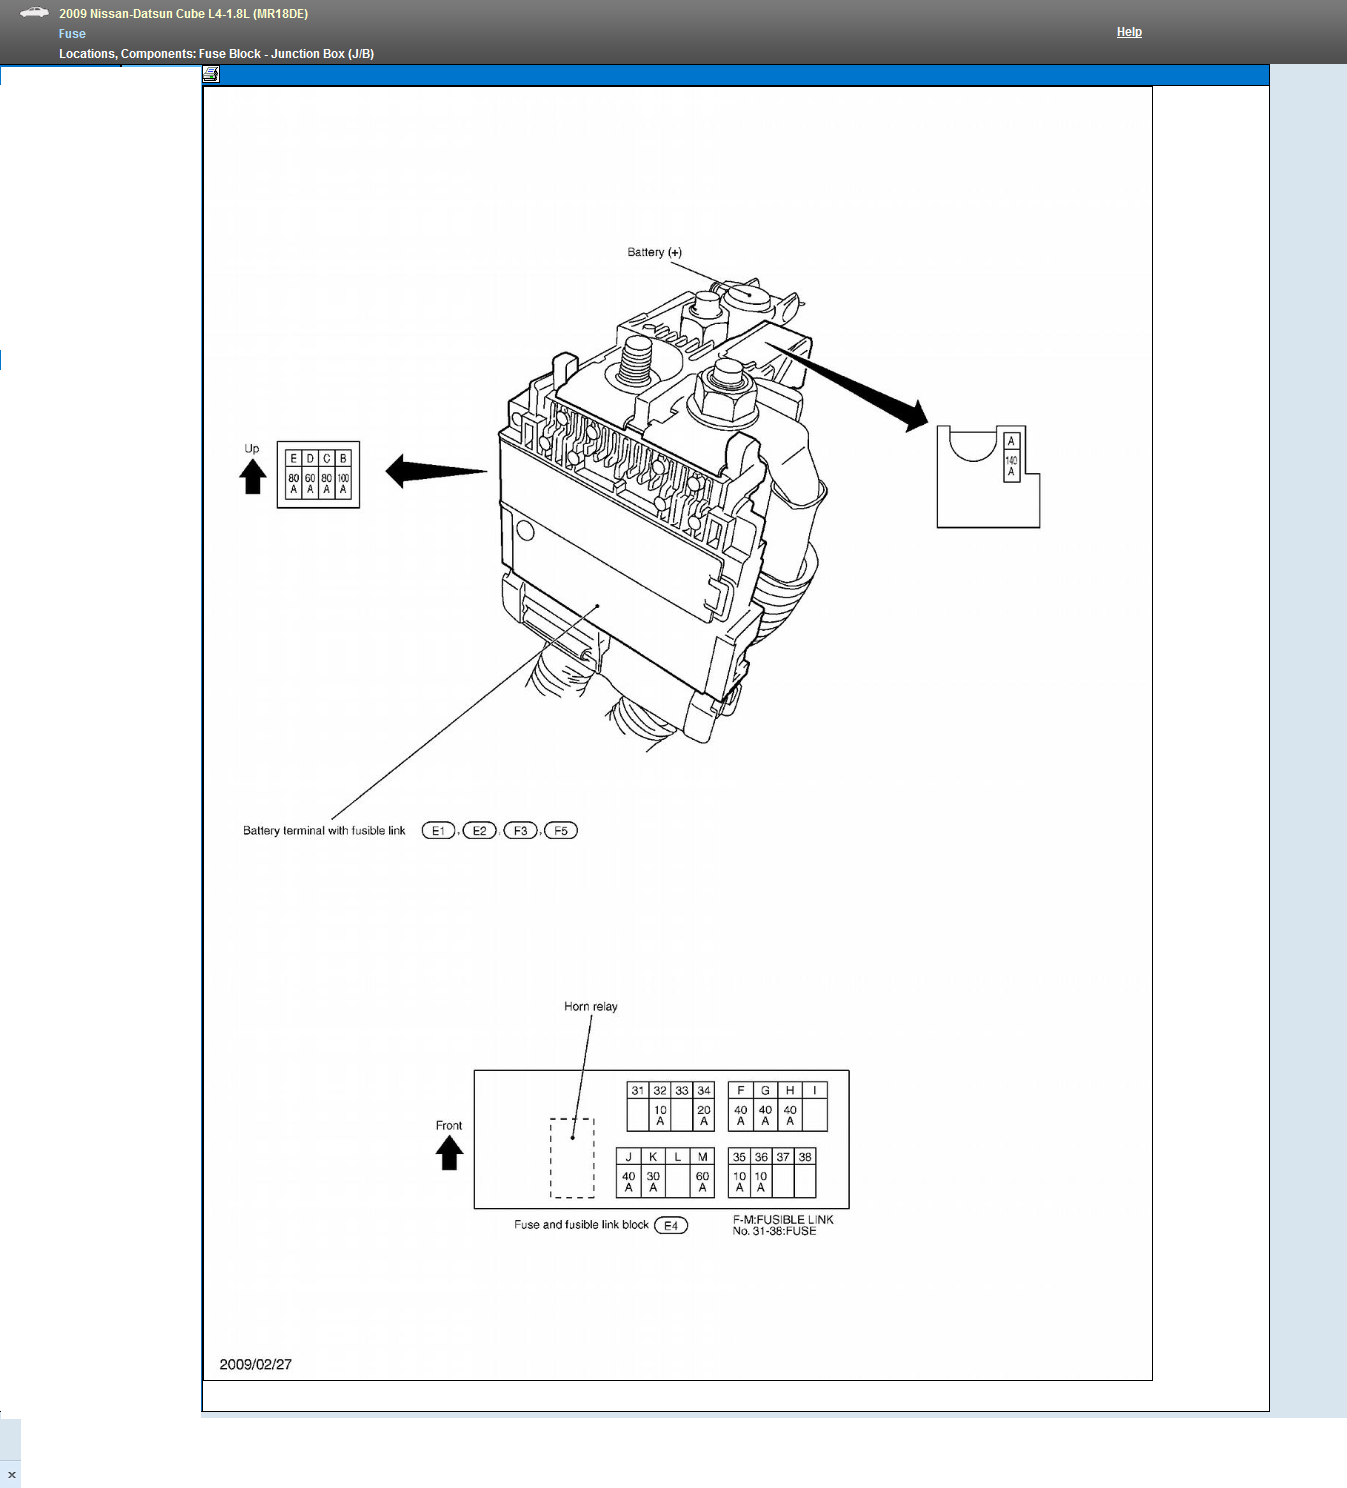 Nissan Cube Fuse Box Location Freddryer Co Wiring Diagram For Free 2010 J26300b7 Further 2009 Owners Manual 14 728 Moreover Also Hqdefault Together With I2 Likewise